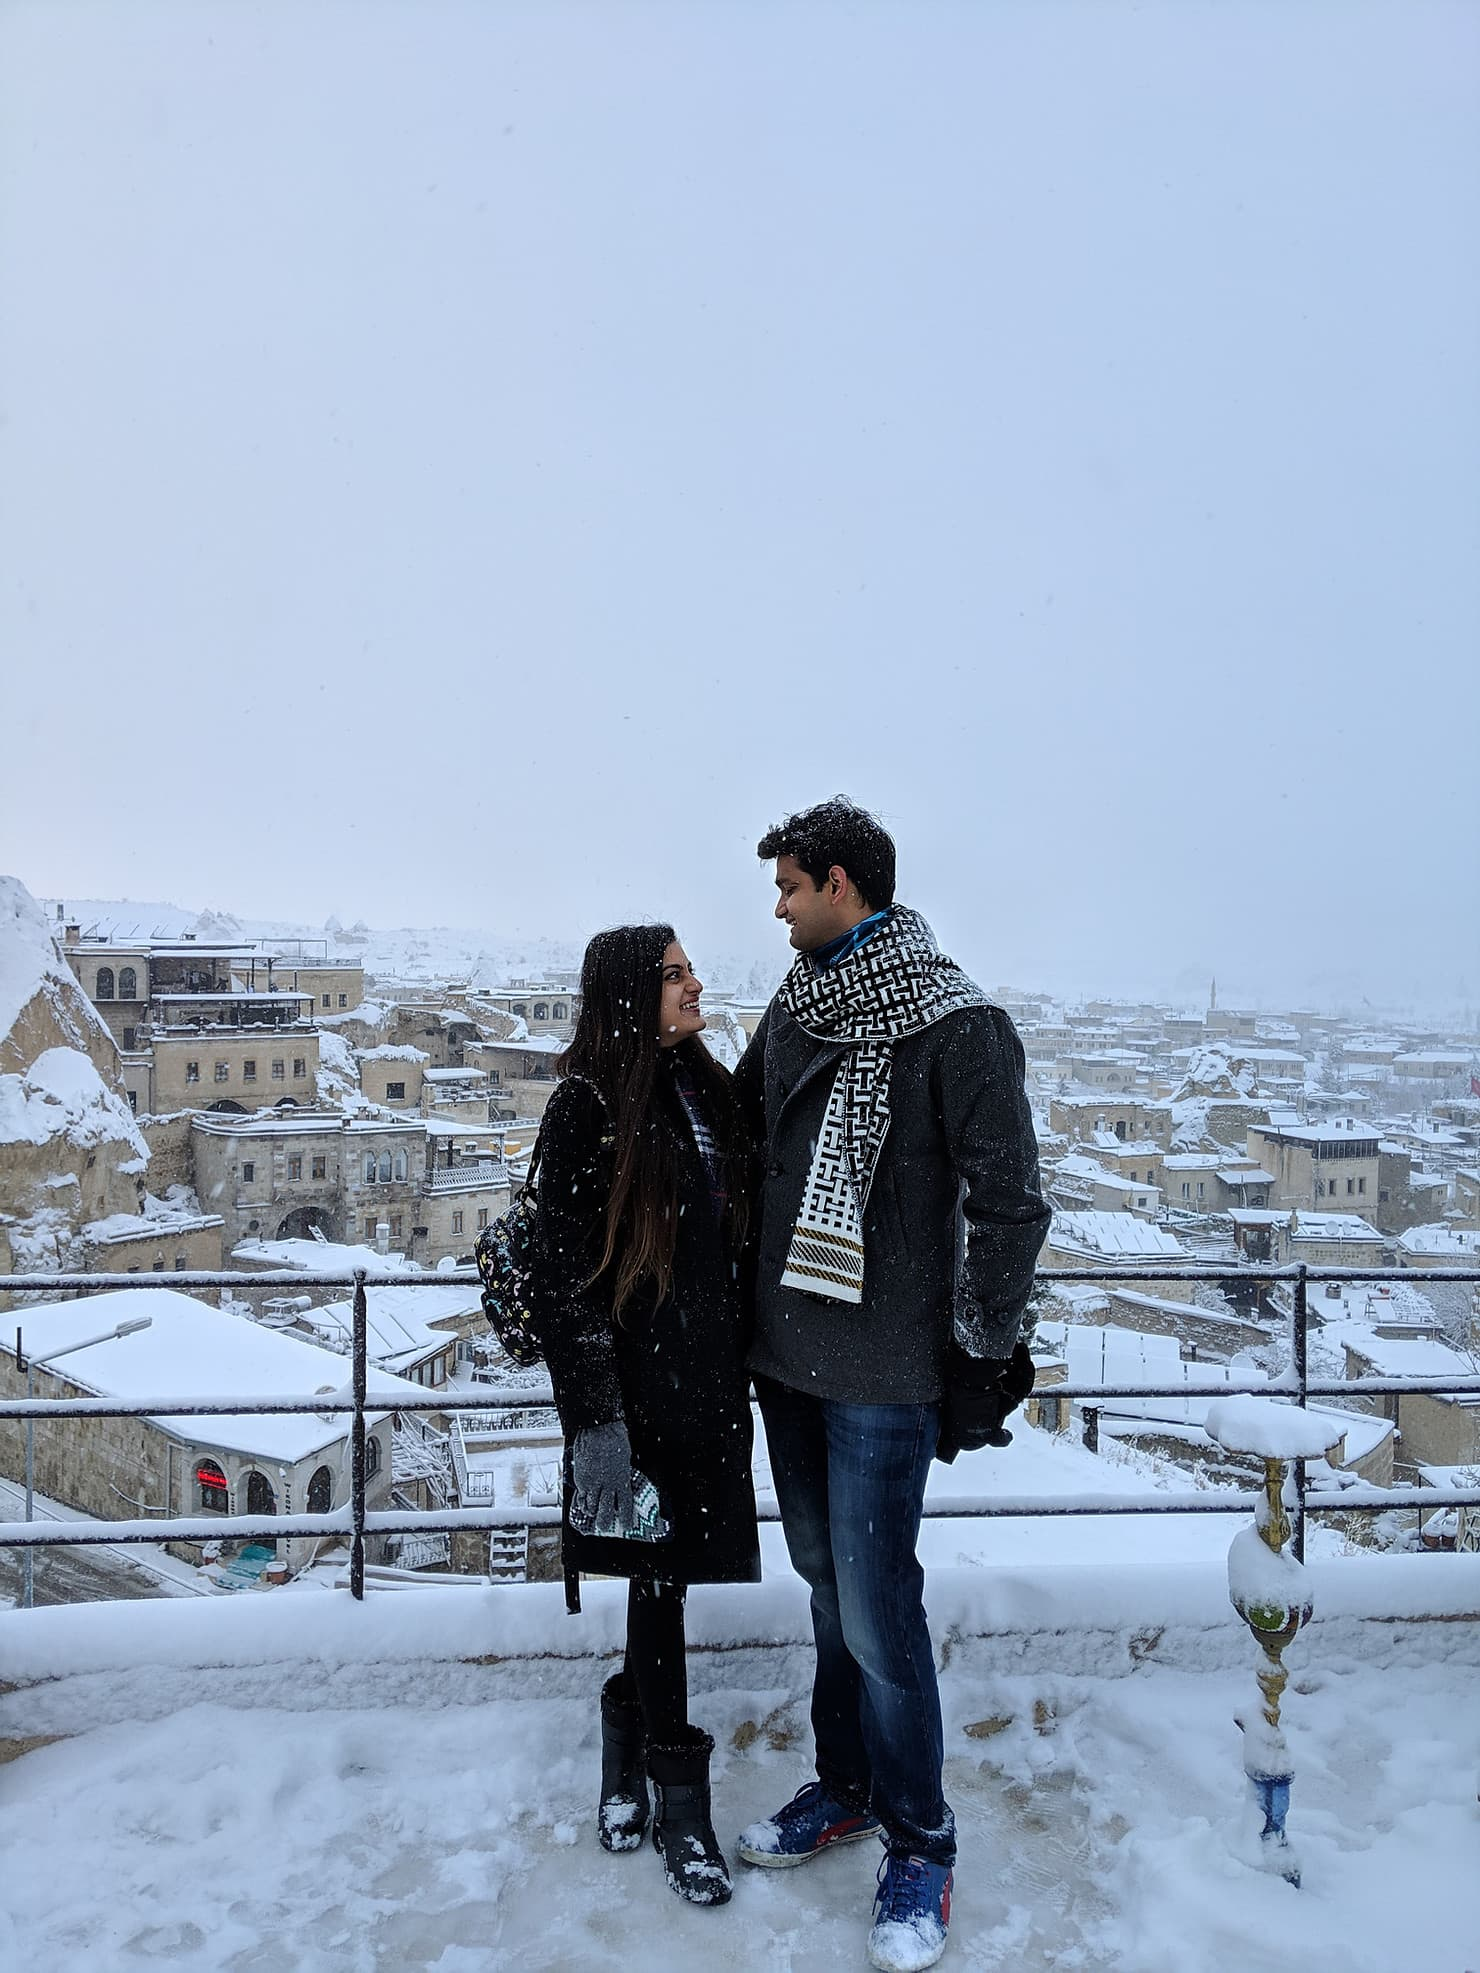 Neha & Arindam's journey among the ruins and clouds of Cappadocia